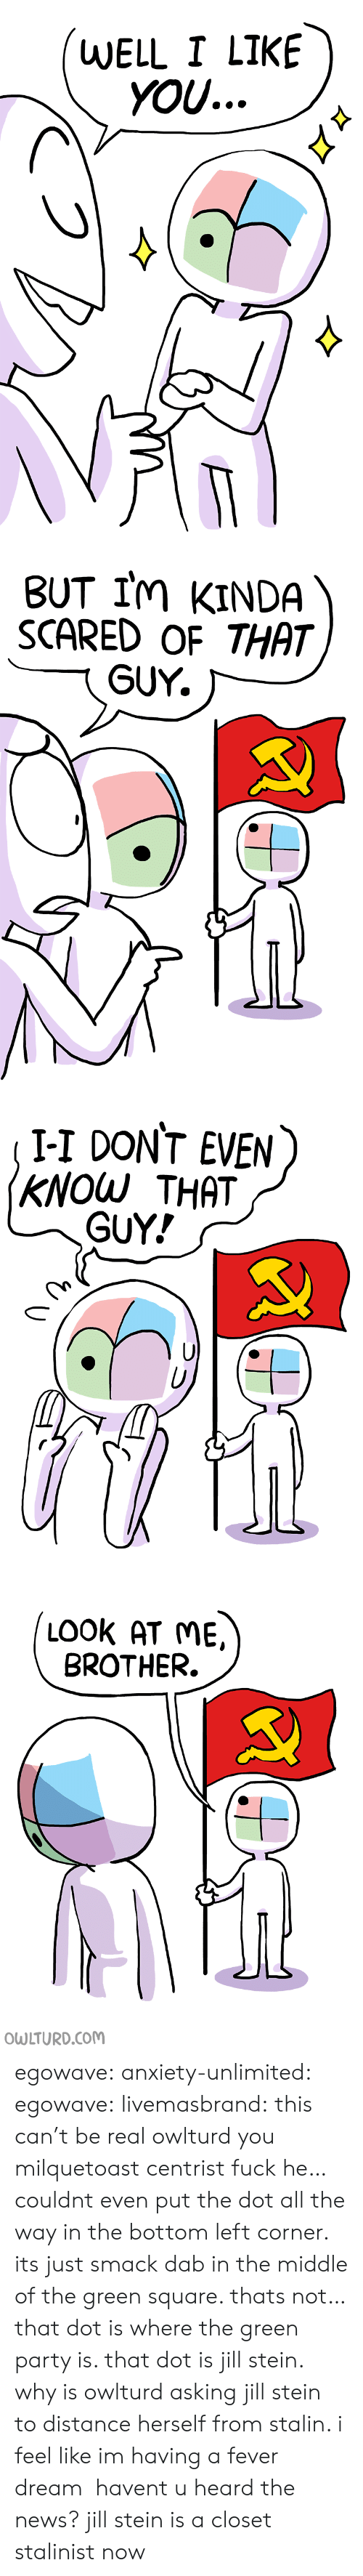 News, Party, and Tumblr: WELL I LIKE  yOU...   BUT IM kINDA  SCARED OF THAT  GUY.   I-I DONT EVEN  KNOW THAT  GUY!   LOOK AT ME  BROTHER. egowave: anxiety-unlimited:   egowave:  livemasbrand:  this can't be real  owlturd you milquetoast centrist fuck    he… couldnt even put the dot all the way in the bottom left corner. its just smack dab in the middle of the green square. thats not… that dot is where the green party is. that dot is jill stein. why is owlturd asking jill stein to distance herself from stalin. i feel like im having a fever dream    havent u heard the news? jill stein is a closet stalinist now